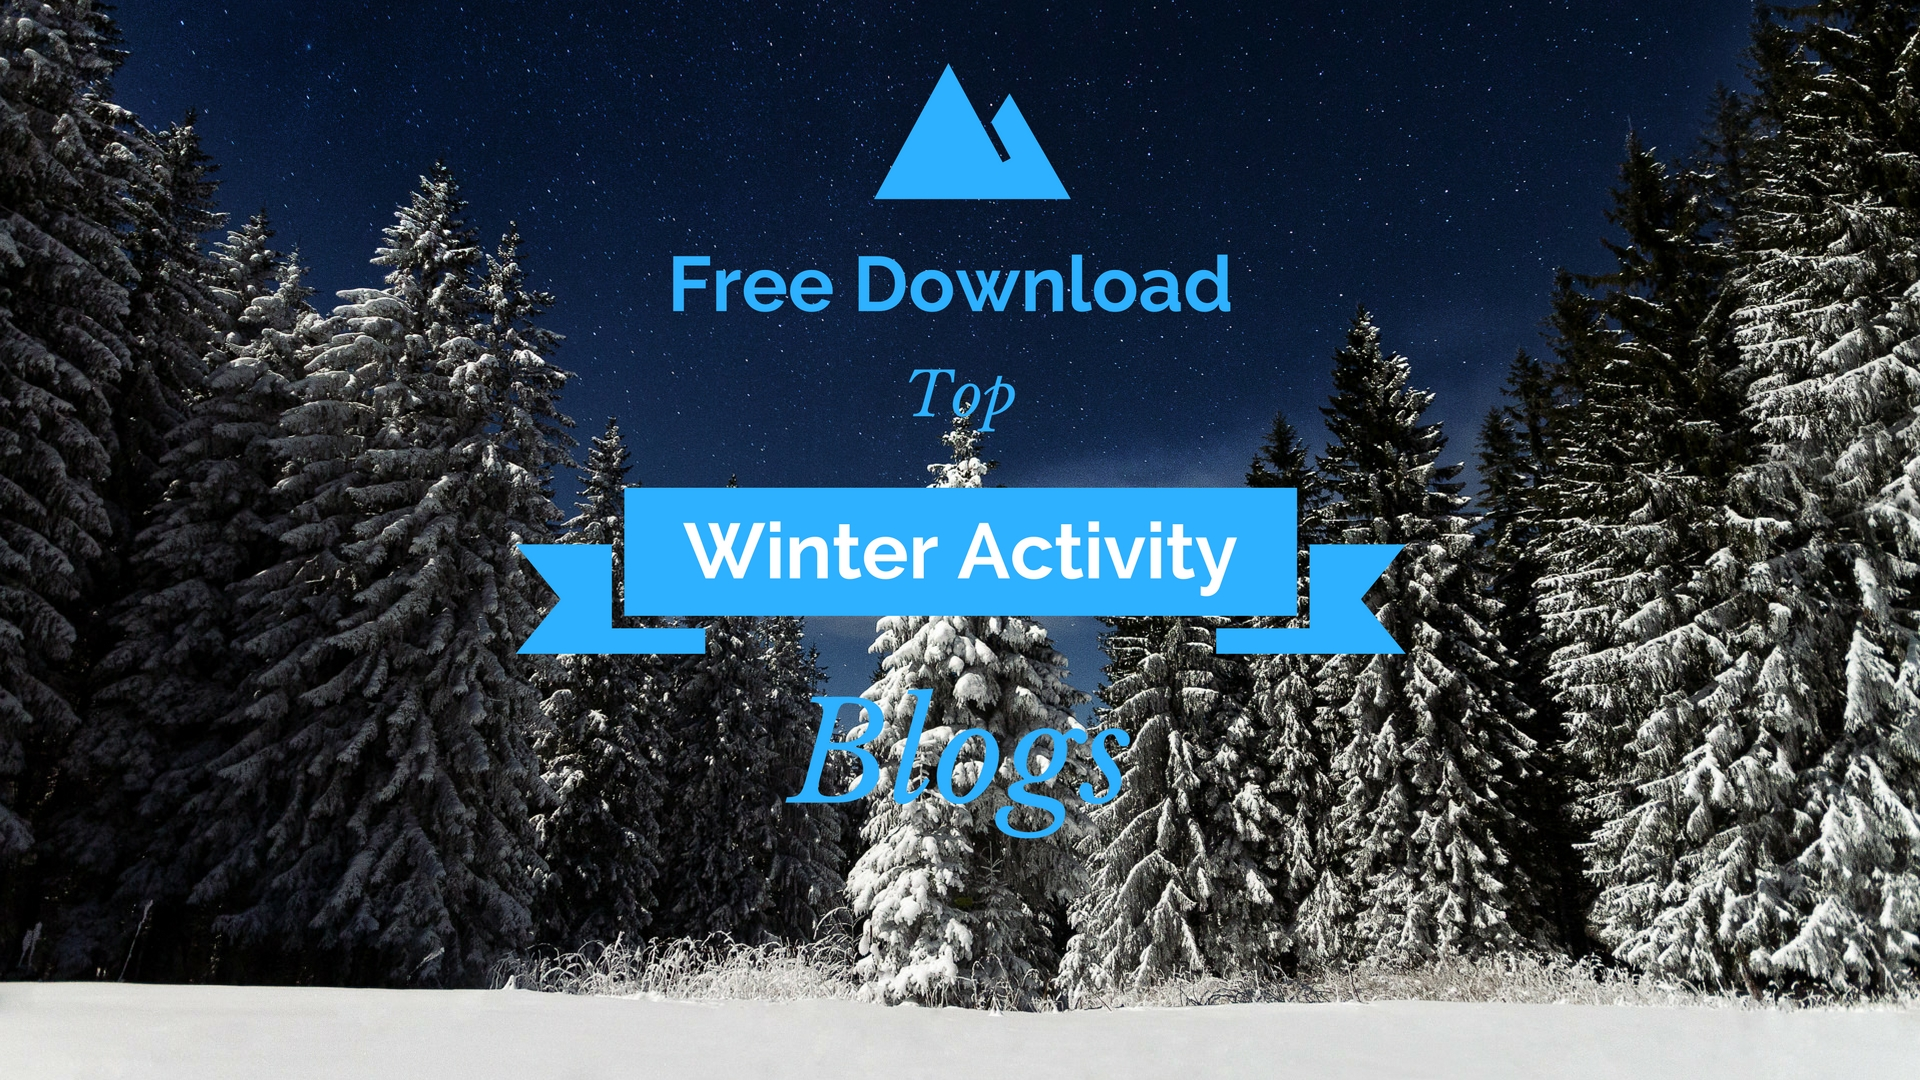 (Free Download) List of Winter Activity Influencers